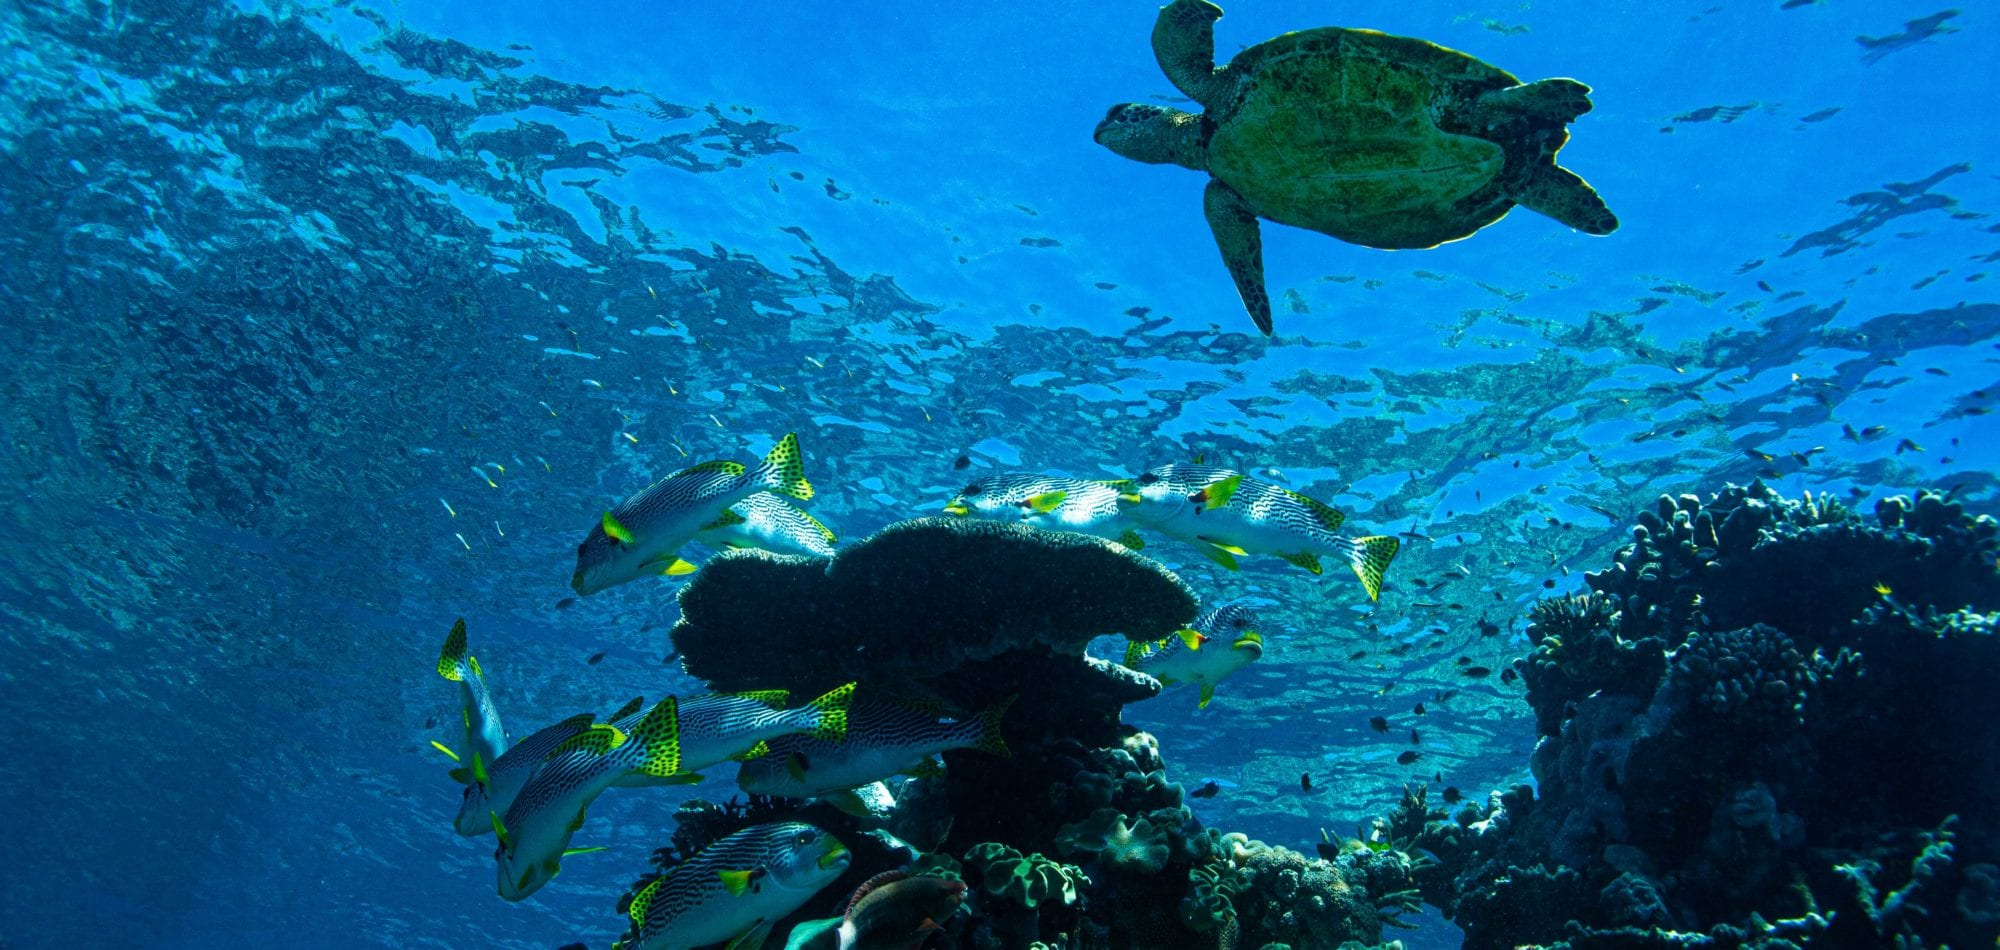 Cairns scuba diving day tour - a turtle and fish at the Great Barrier Reef